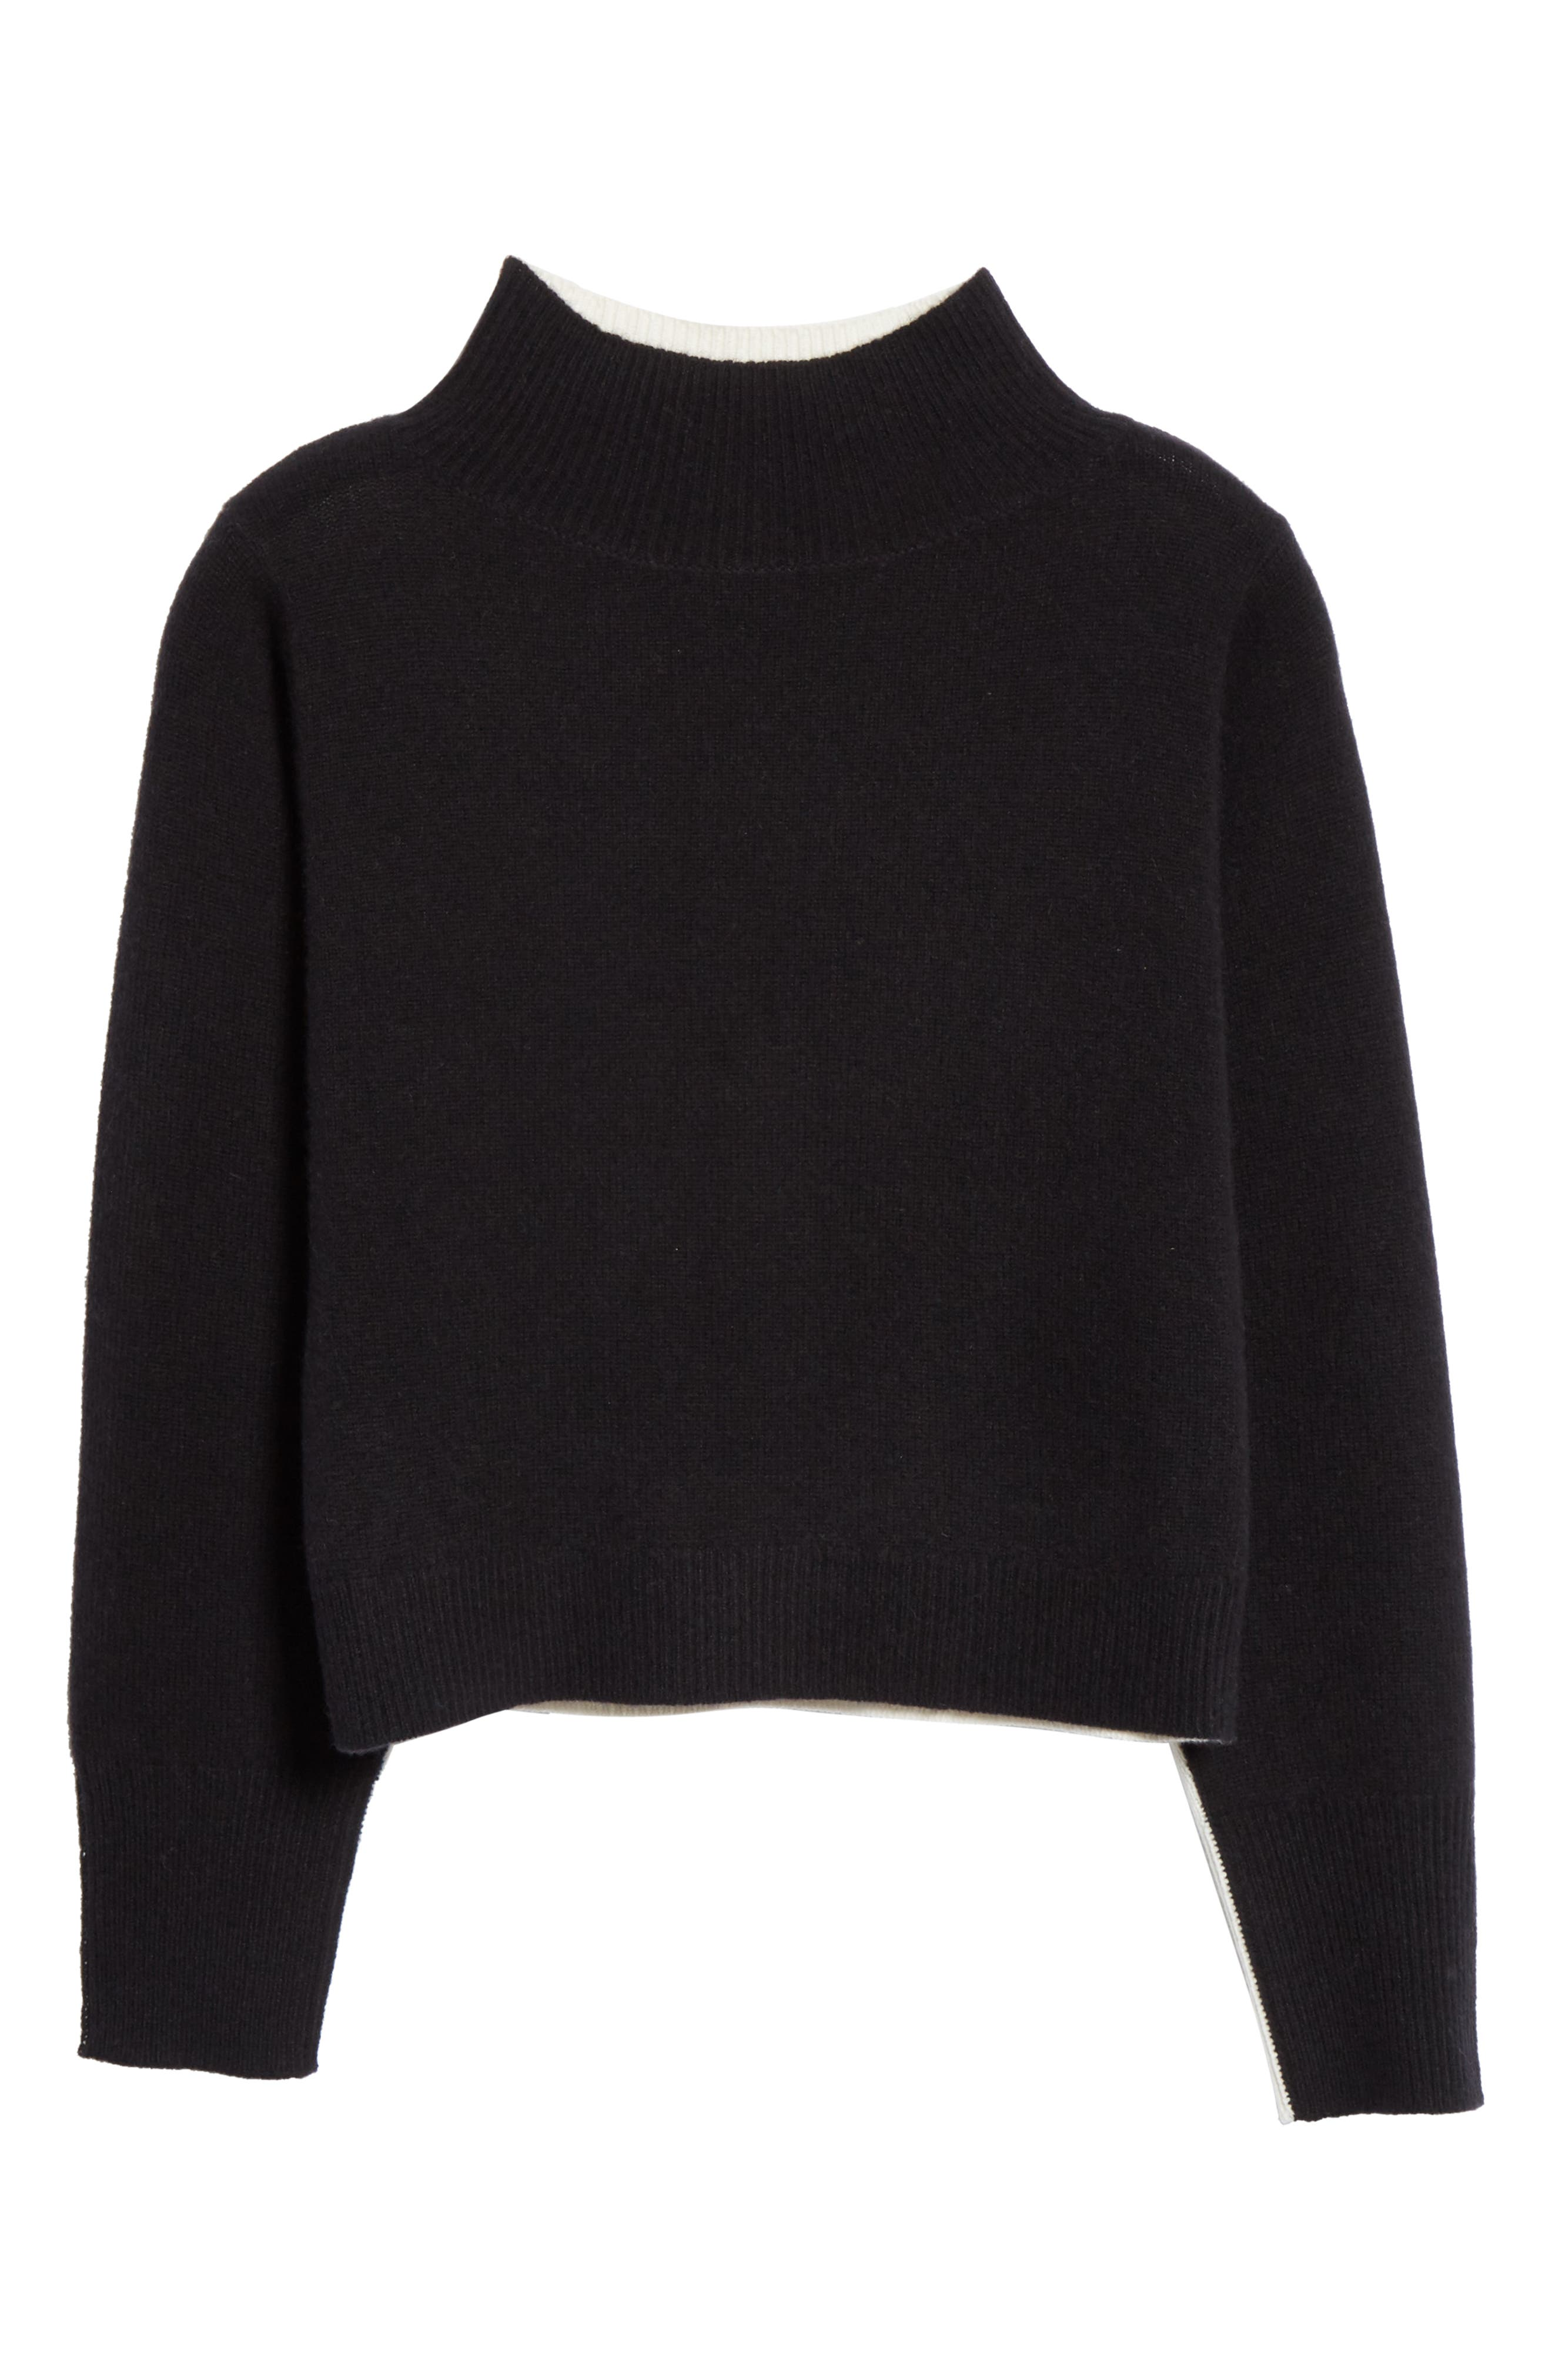 NORDSTROM SIGNATURE, Colorblock Cashmere Sweater, Alternate thumbnail 6, color, BLACK- IVORY COMBO